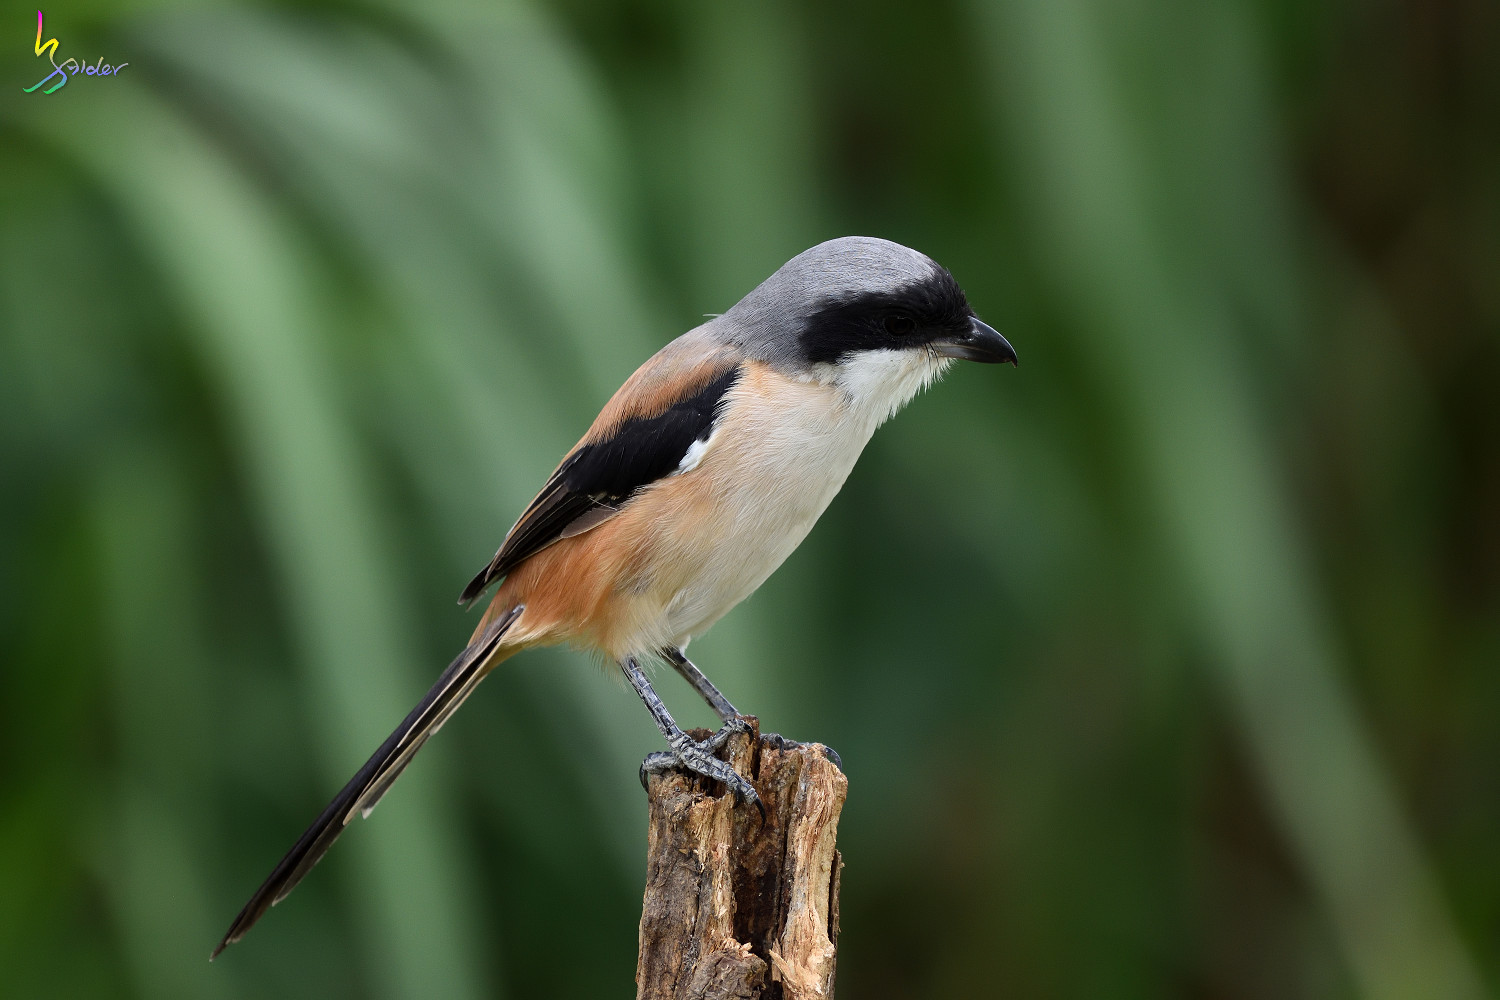 Long-tailed_Shrike_0768